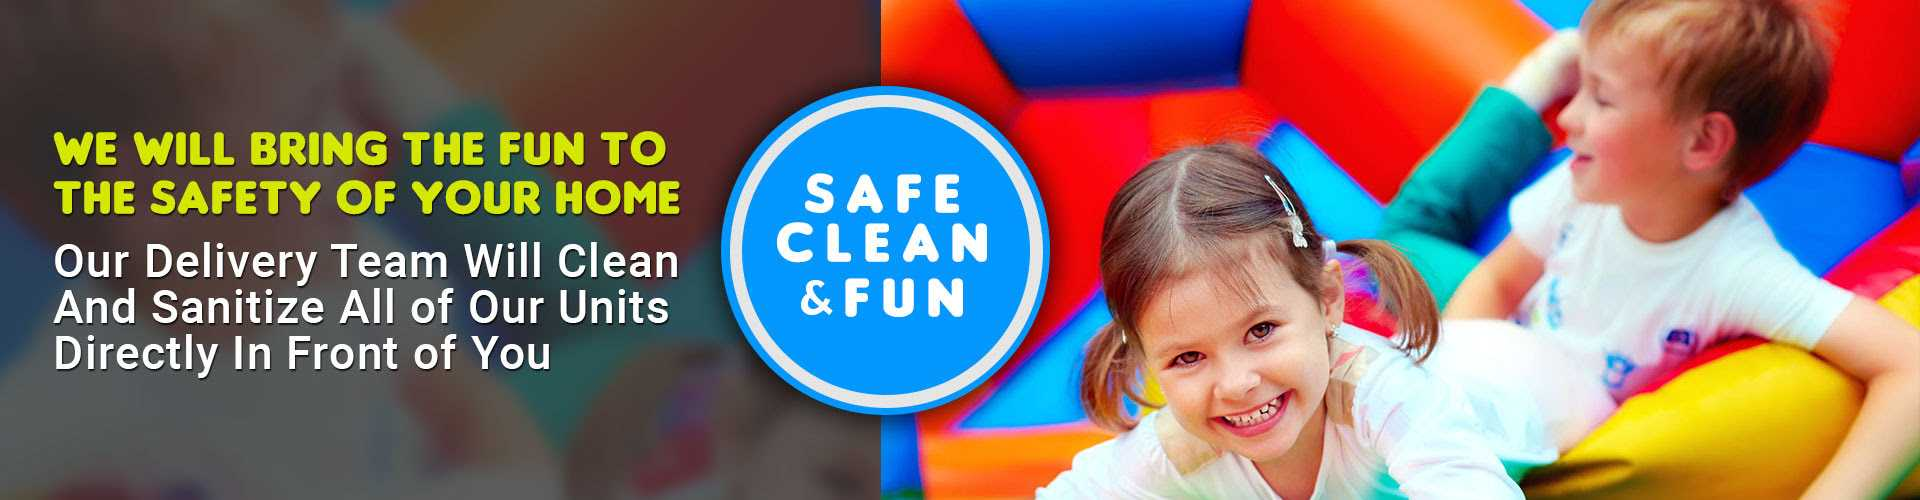 Safe and CleanBounce Houses